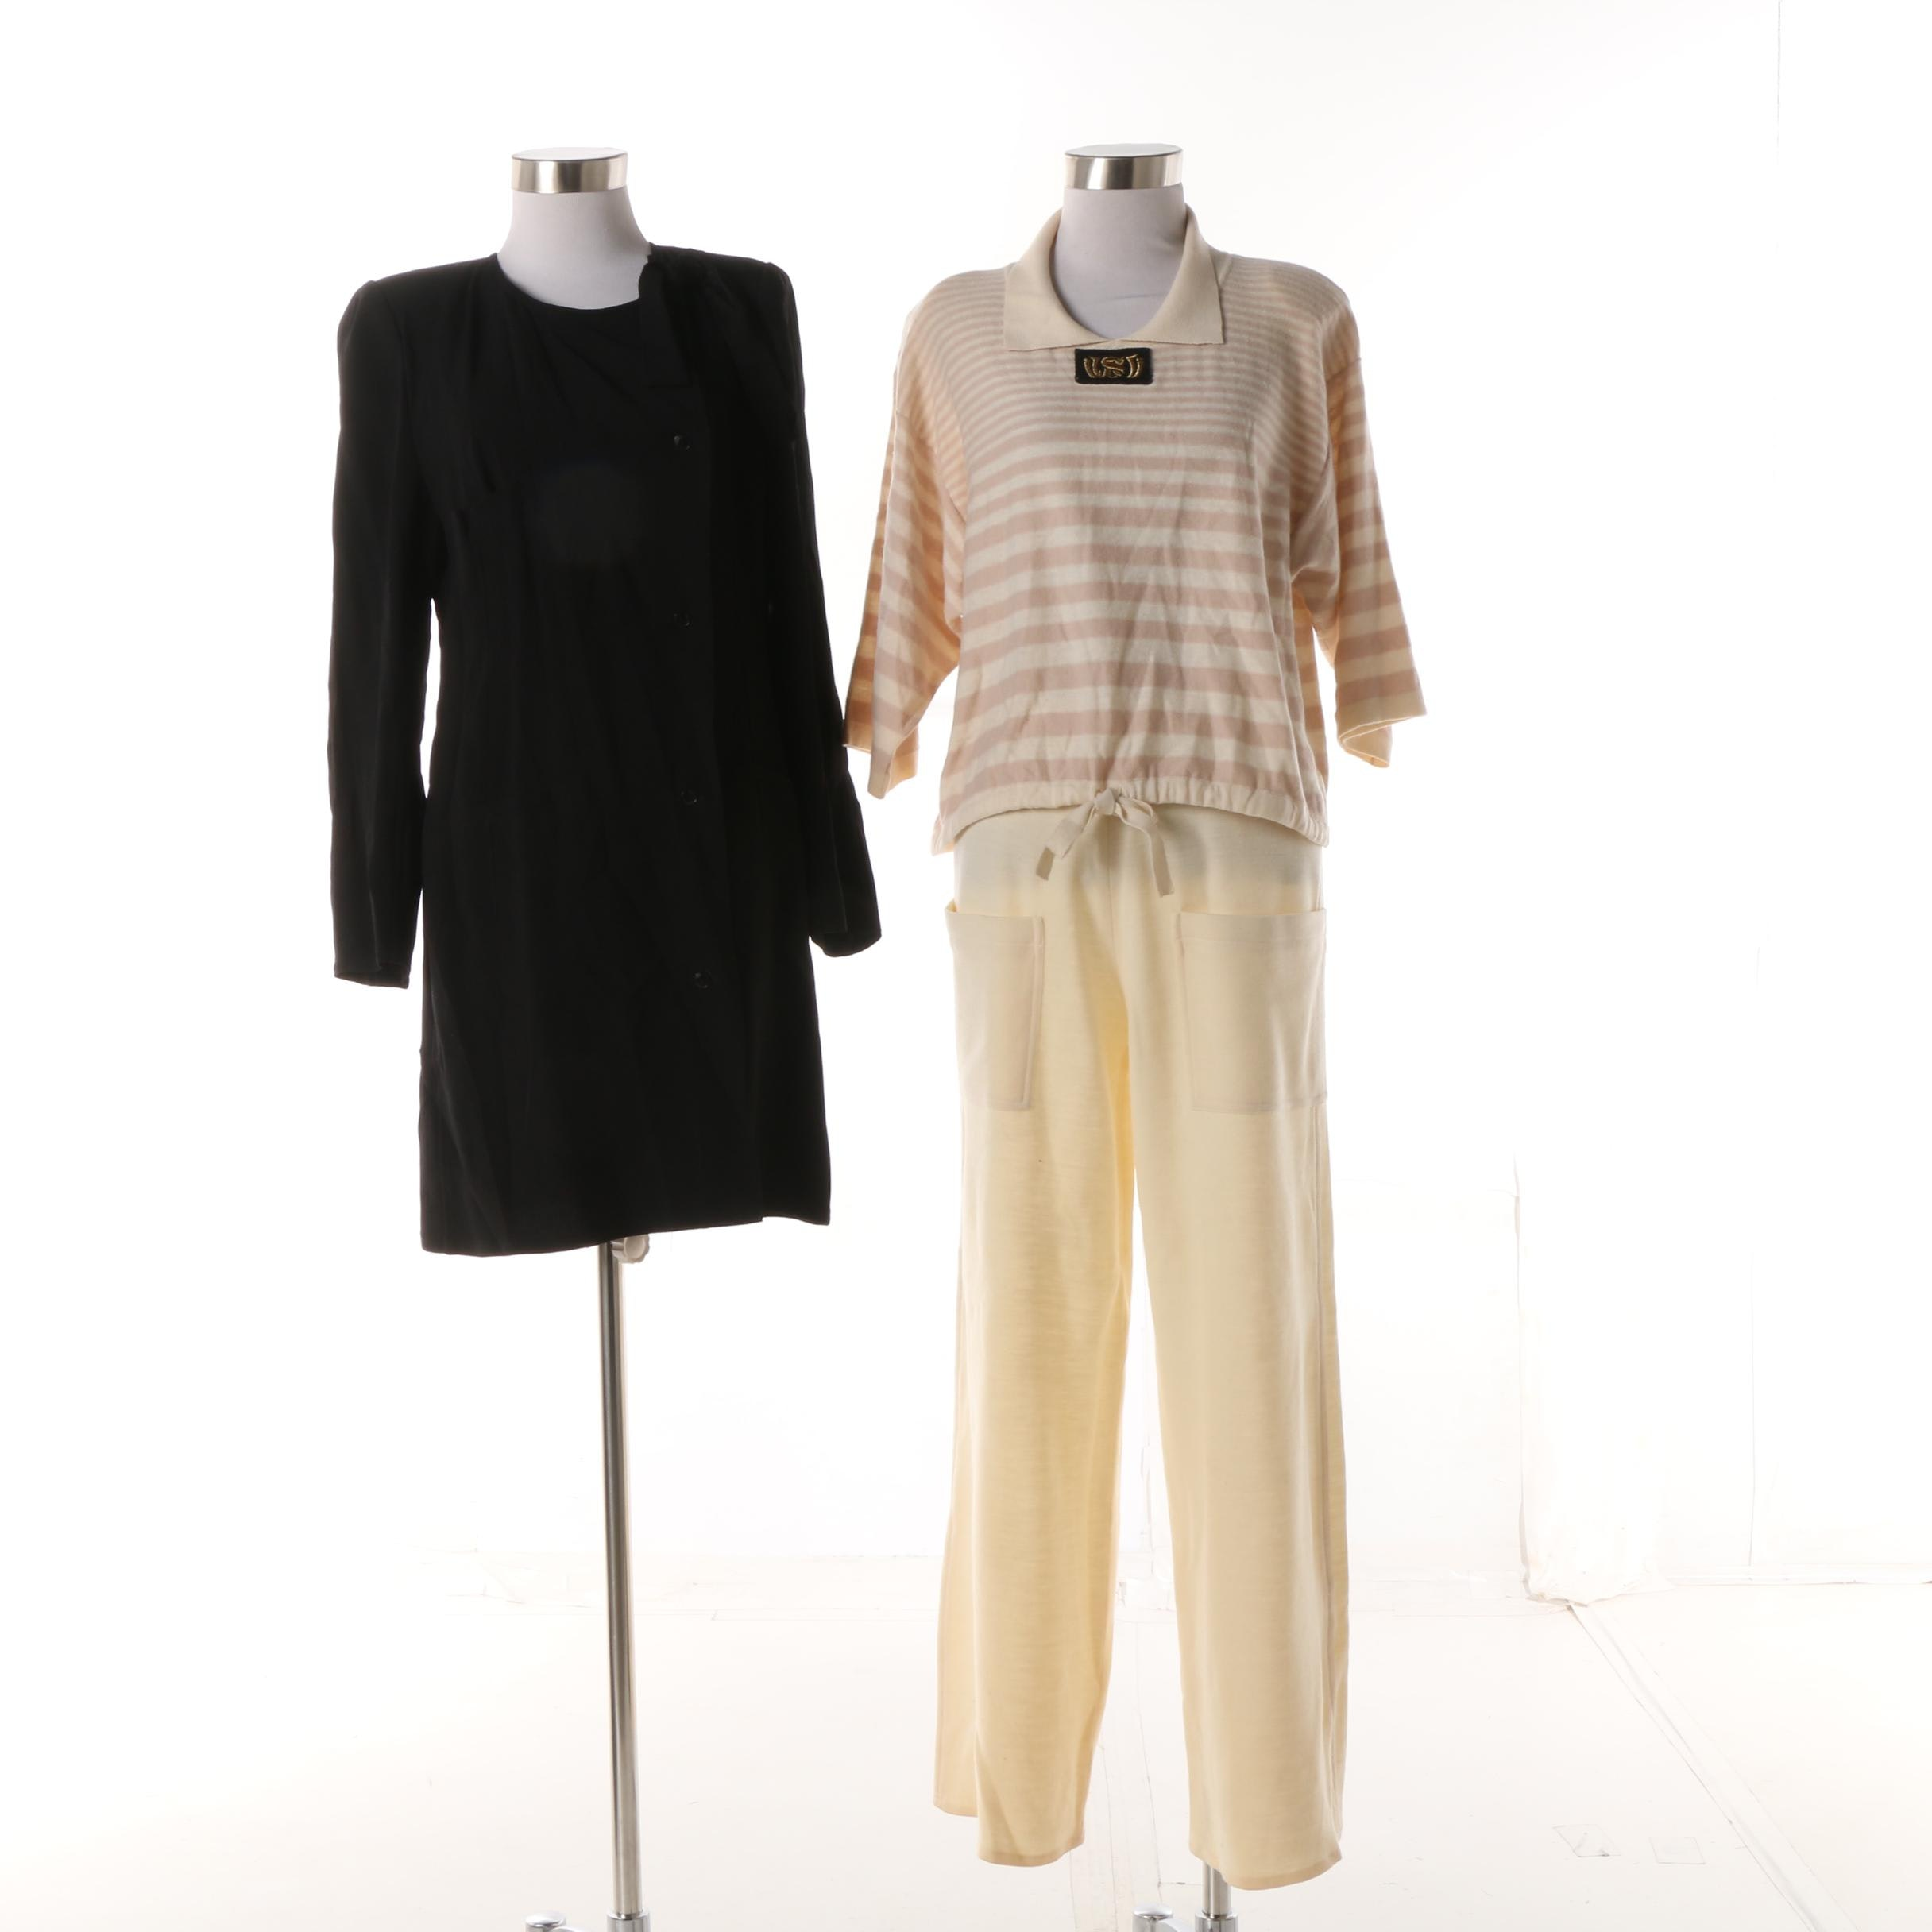 Women's Circa 1980s Vintage Sonia Rykiel Black Dress and Knit Separates